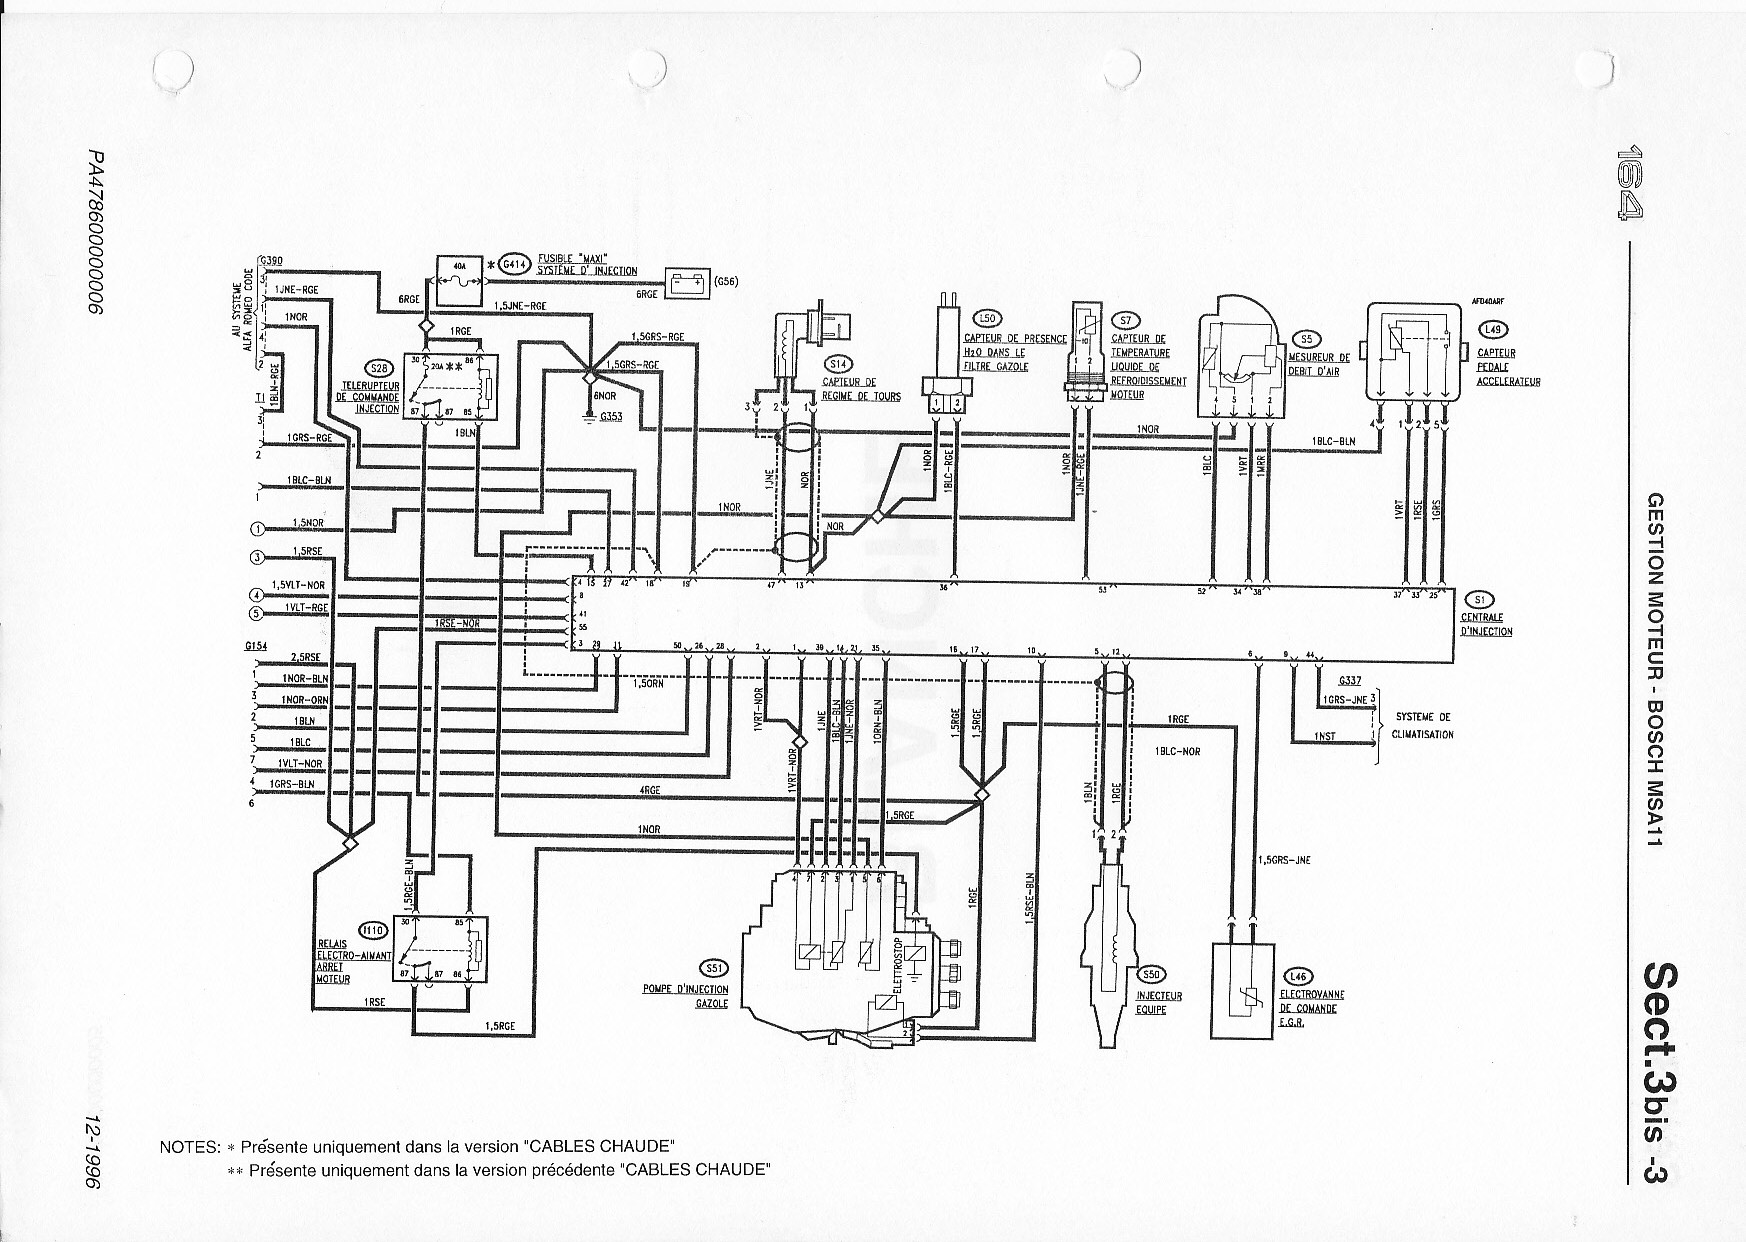 Alfa Romeo 164l Wiring Diagram Download Diagrams On Fuse Box Service Manual 1995 164 Transmission Grey Spider